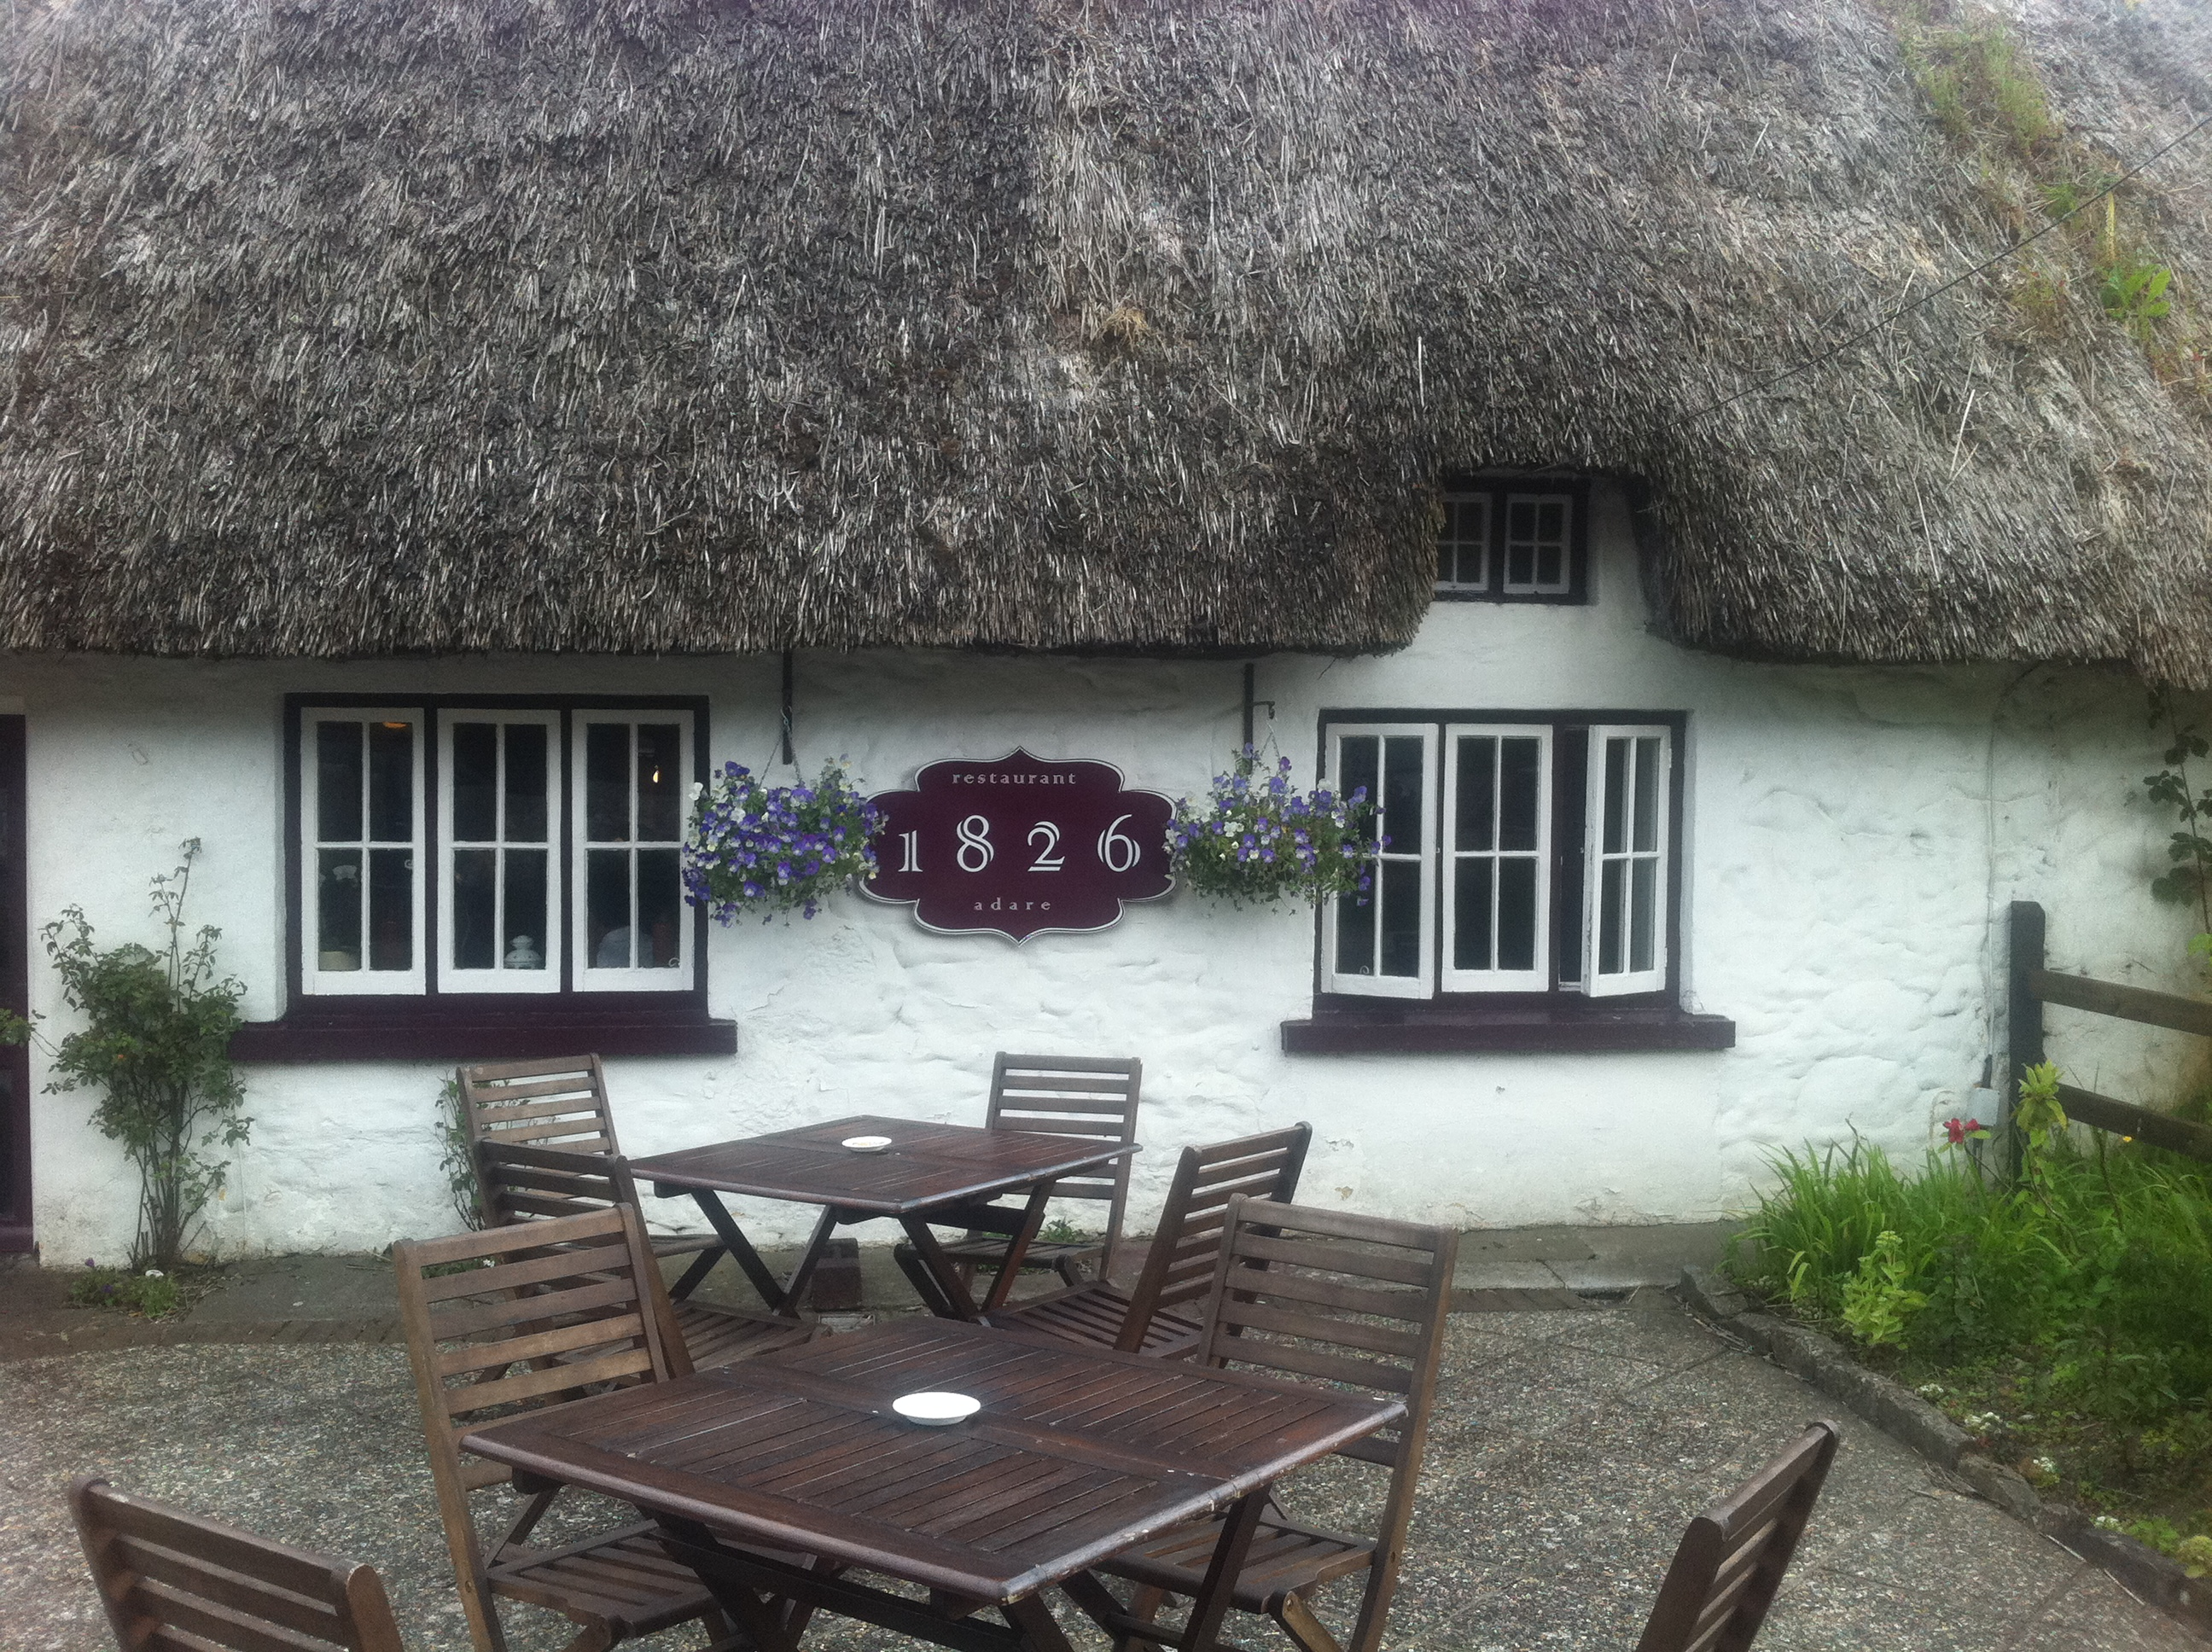 Adare The Little Jewel In The Lady Of Limerick S Crown